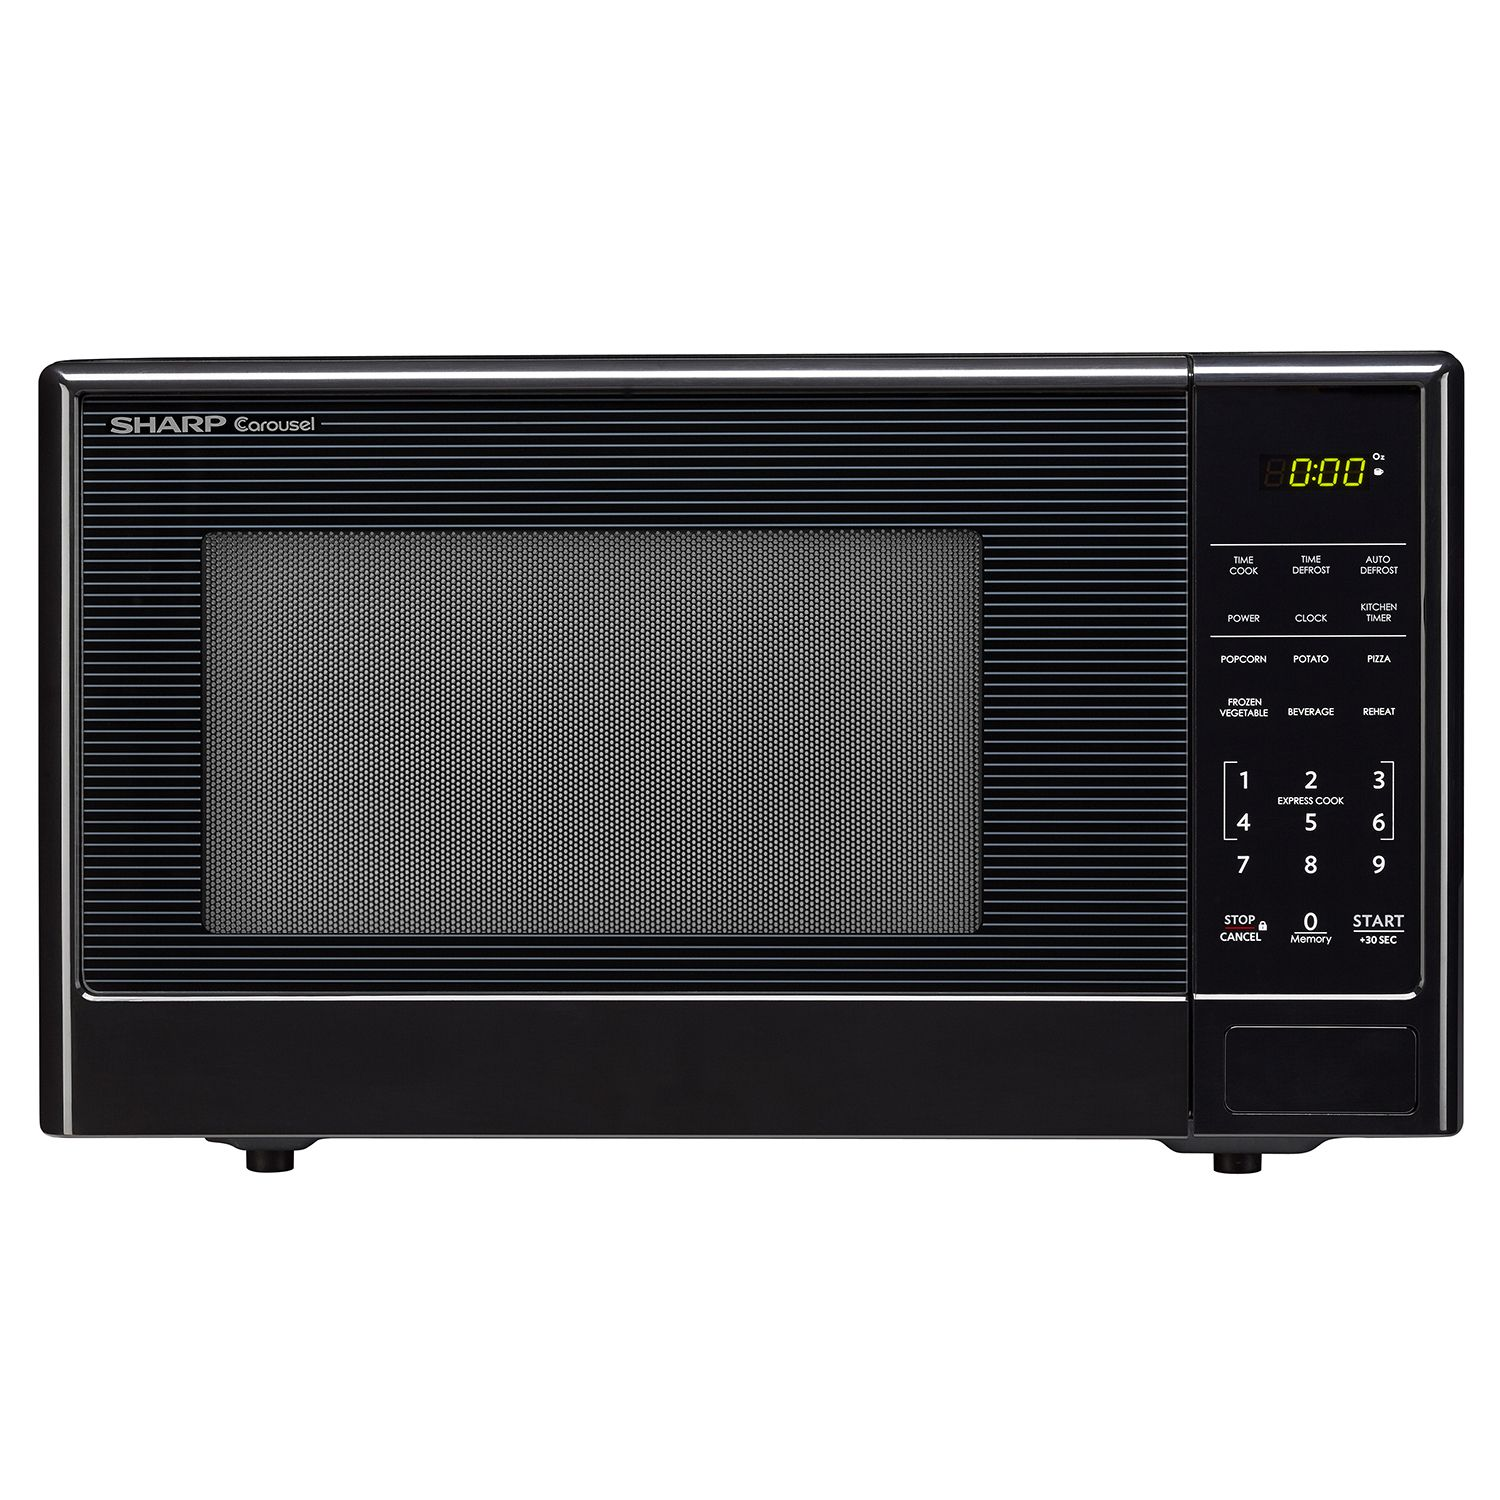 Sharp Compact 1.1 cu.ft. Stainless-Steel Countertop Microwave Oven